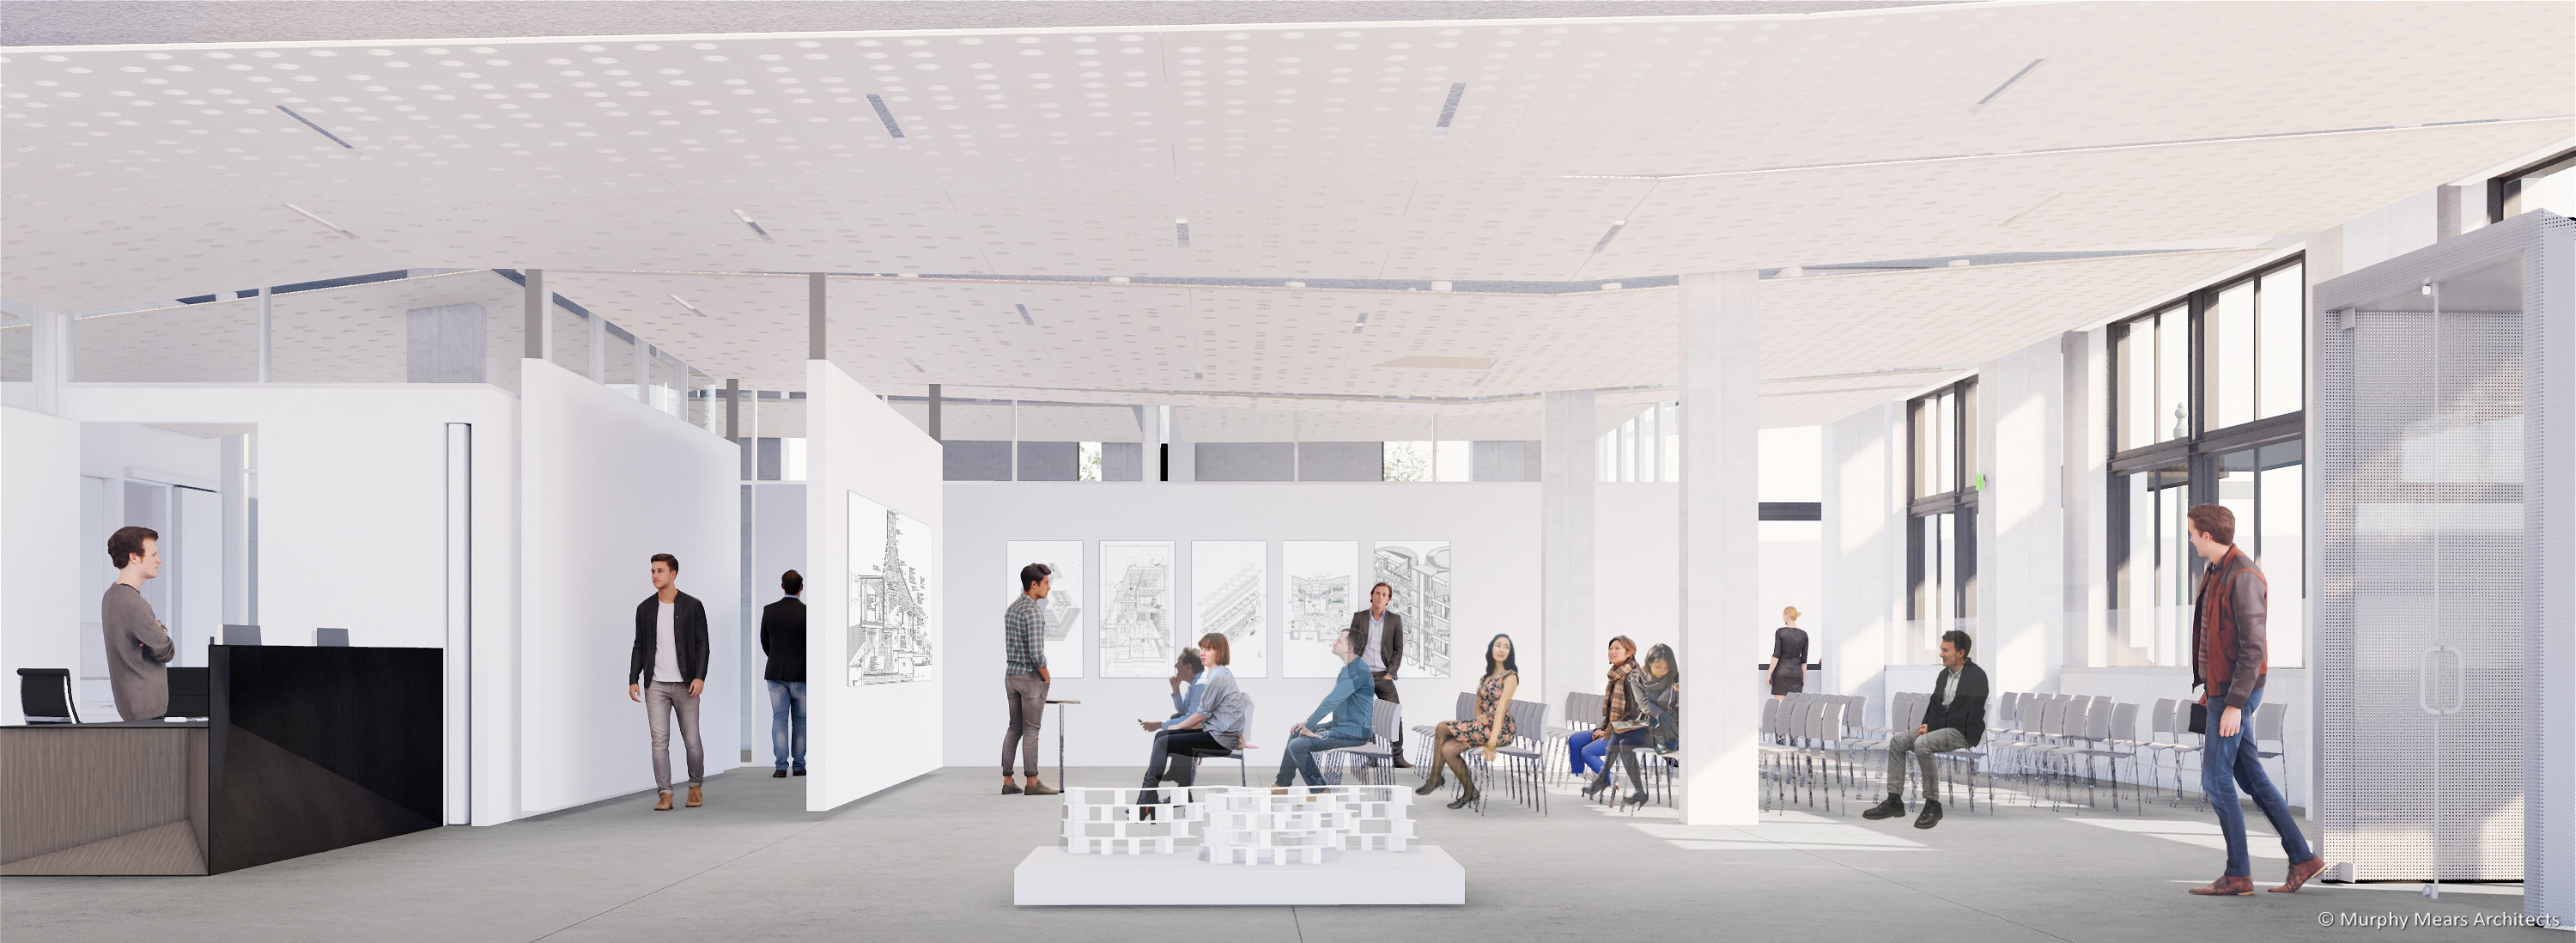 Architecture Center Houston rendering - Street level flexible space with a daytime classroom session.